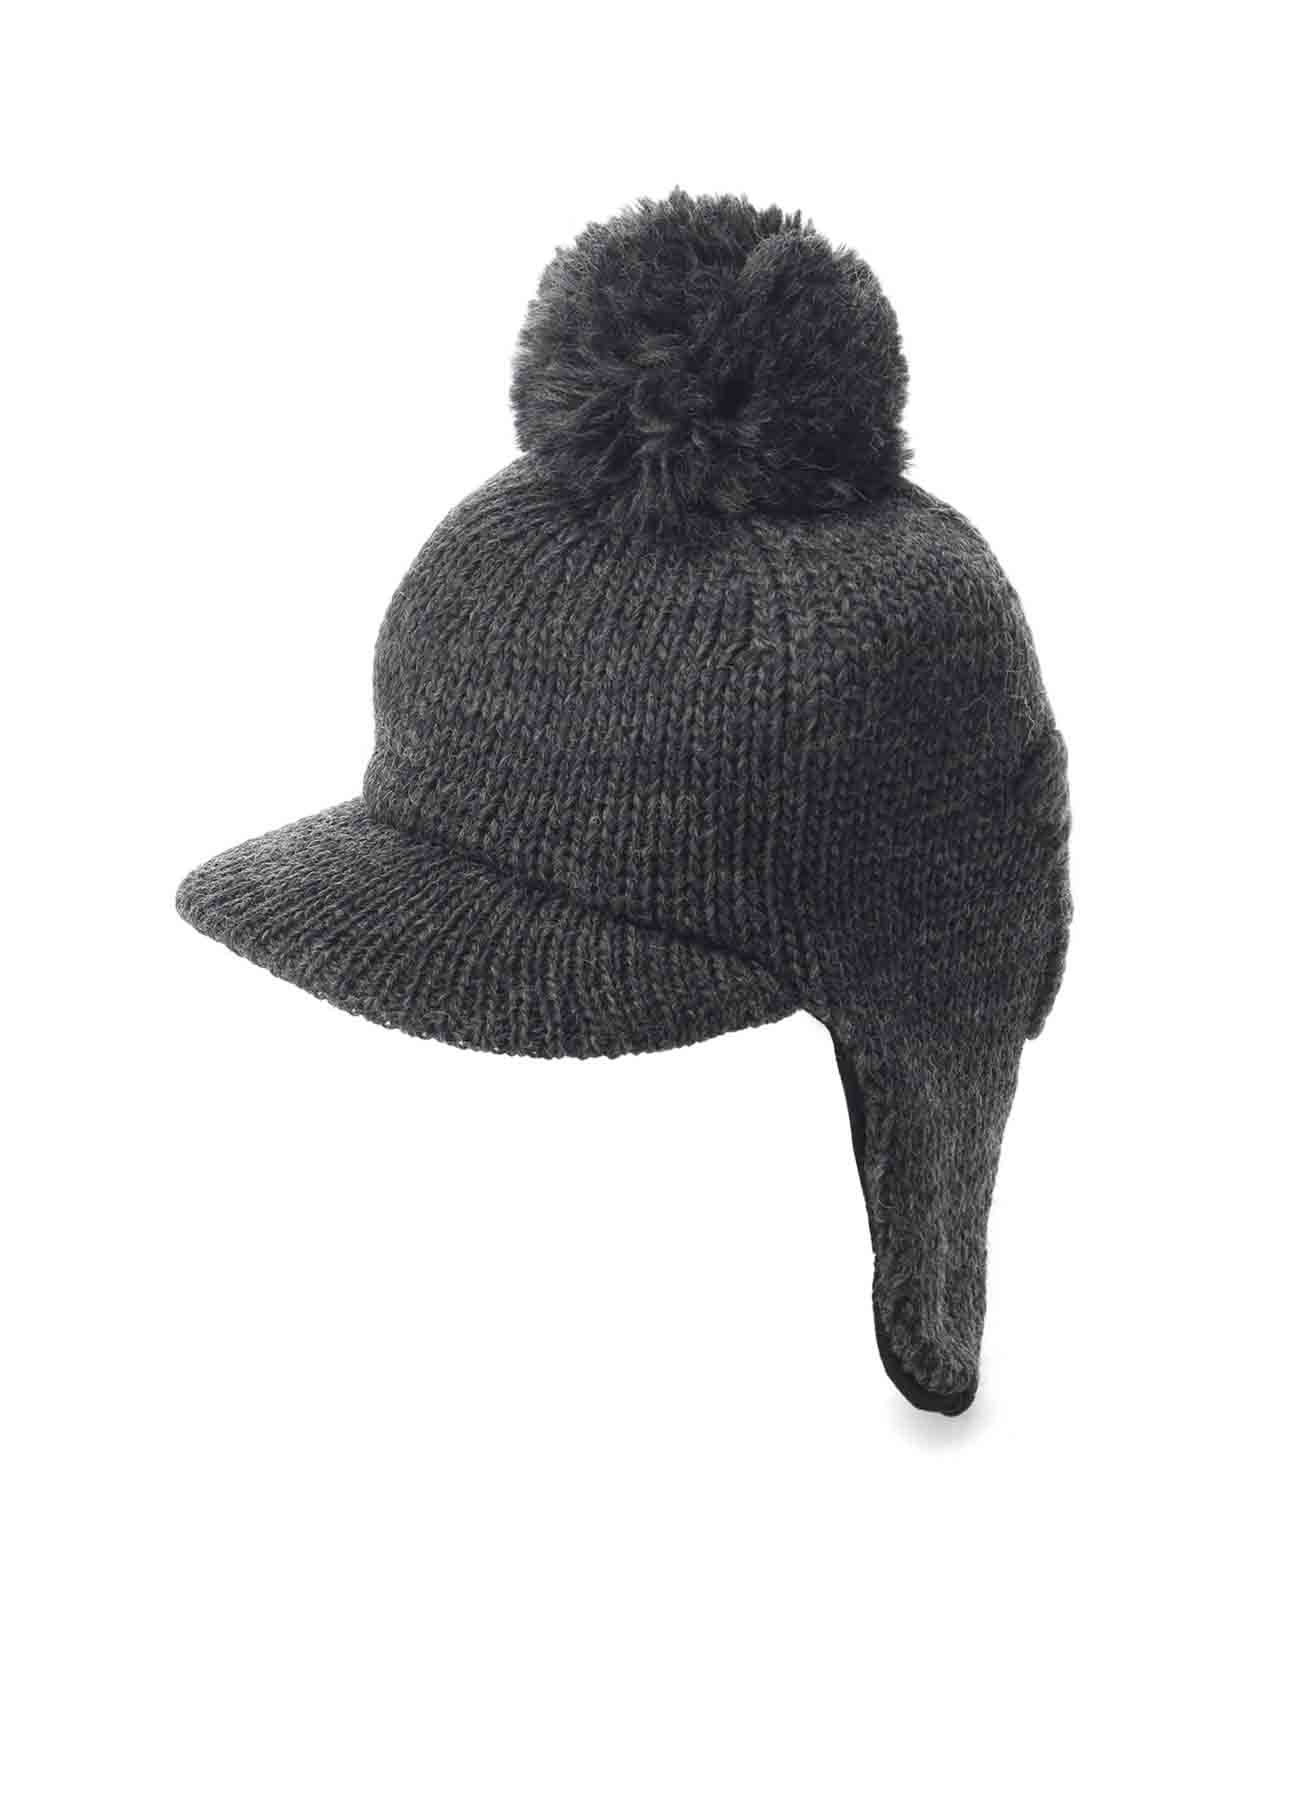 1/3 W EMBROIDERED PILOT KNIT CAP